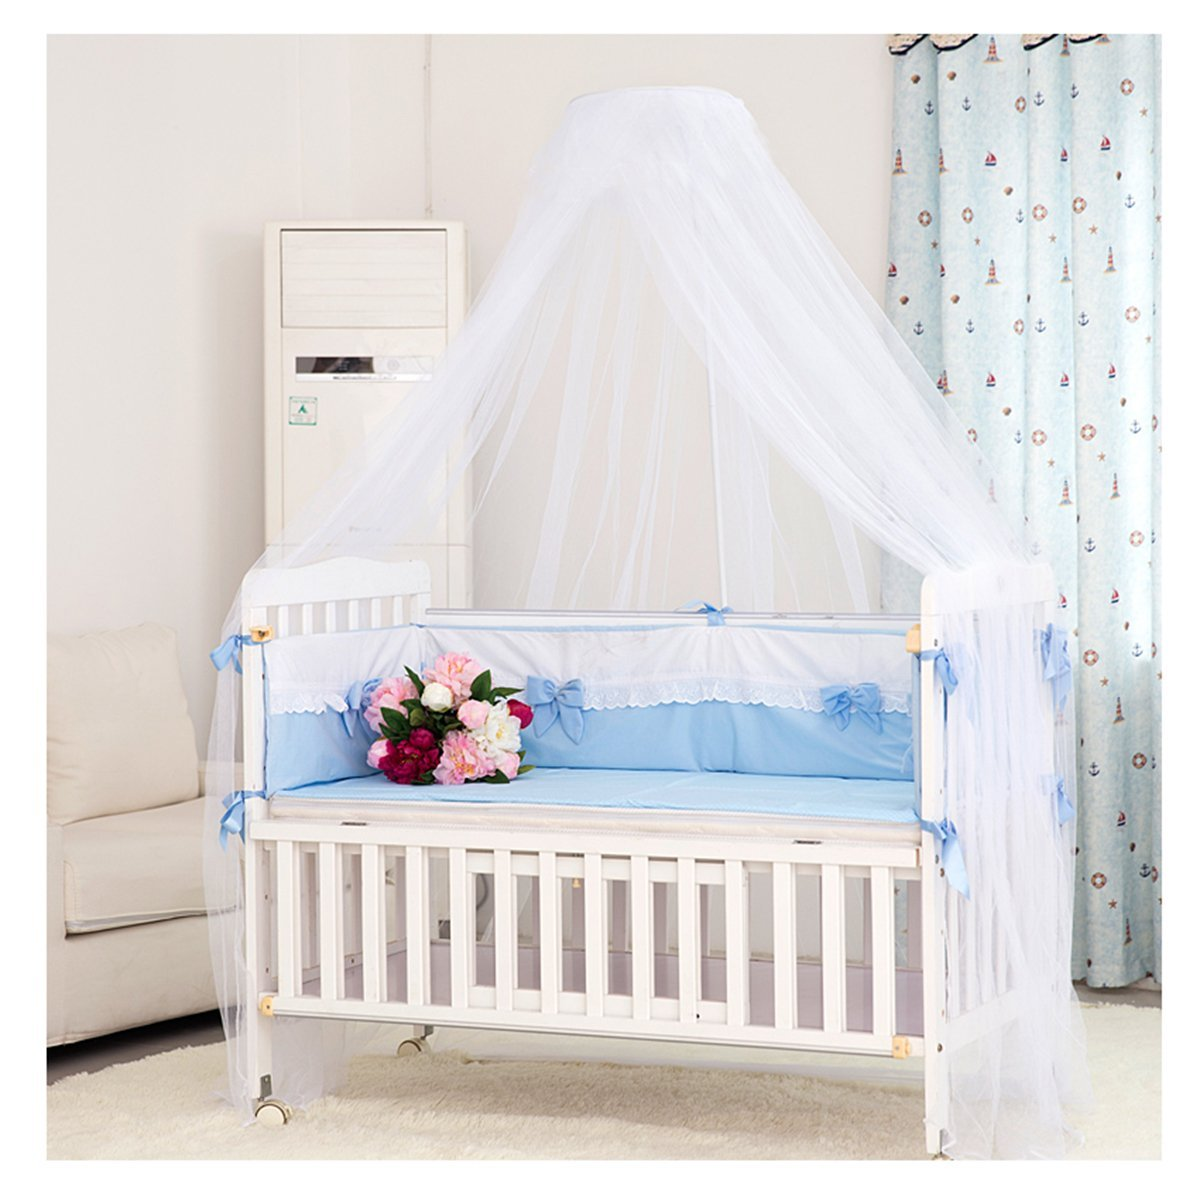 Amazon.com  Mosquito Net - Foxnovo Toddler Bed Crib Canopy Mosquito Netting (White)  Baby  sc 1 st  Amazon.com & Amazon.com : Mosquito Net - Foxnovo Toddler Bed Crib Canopy ...